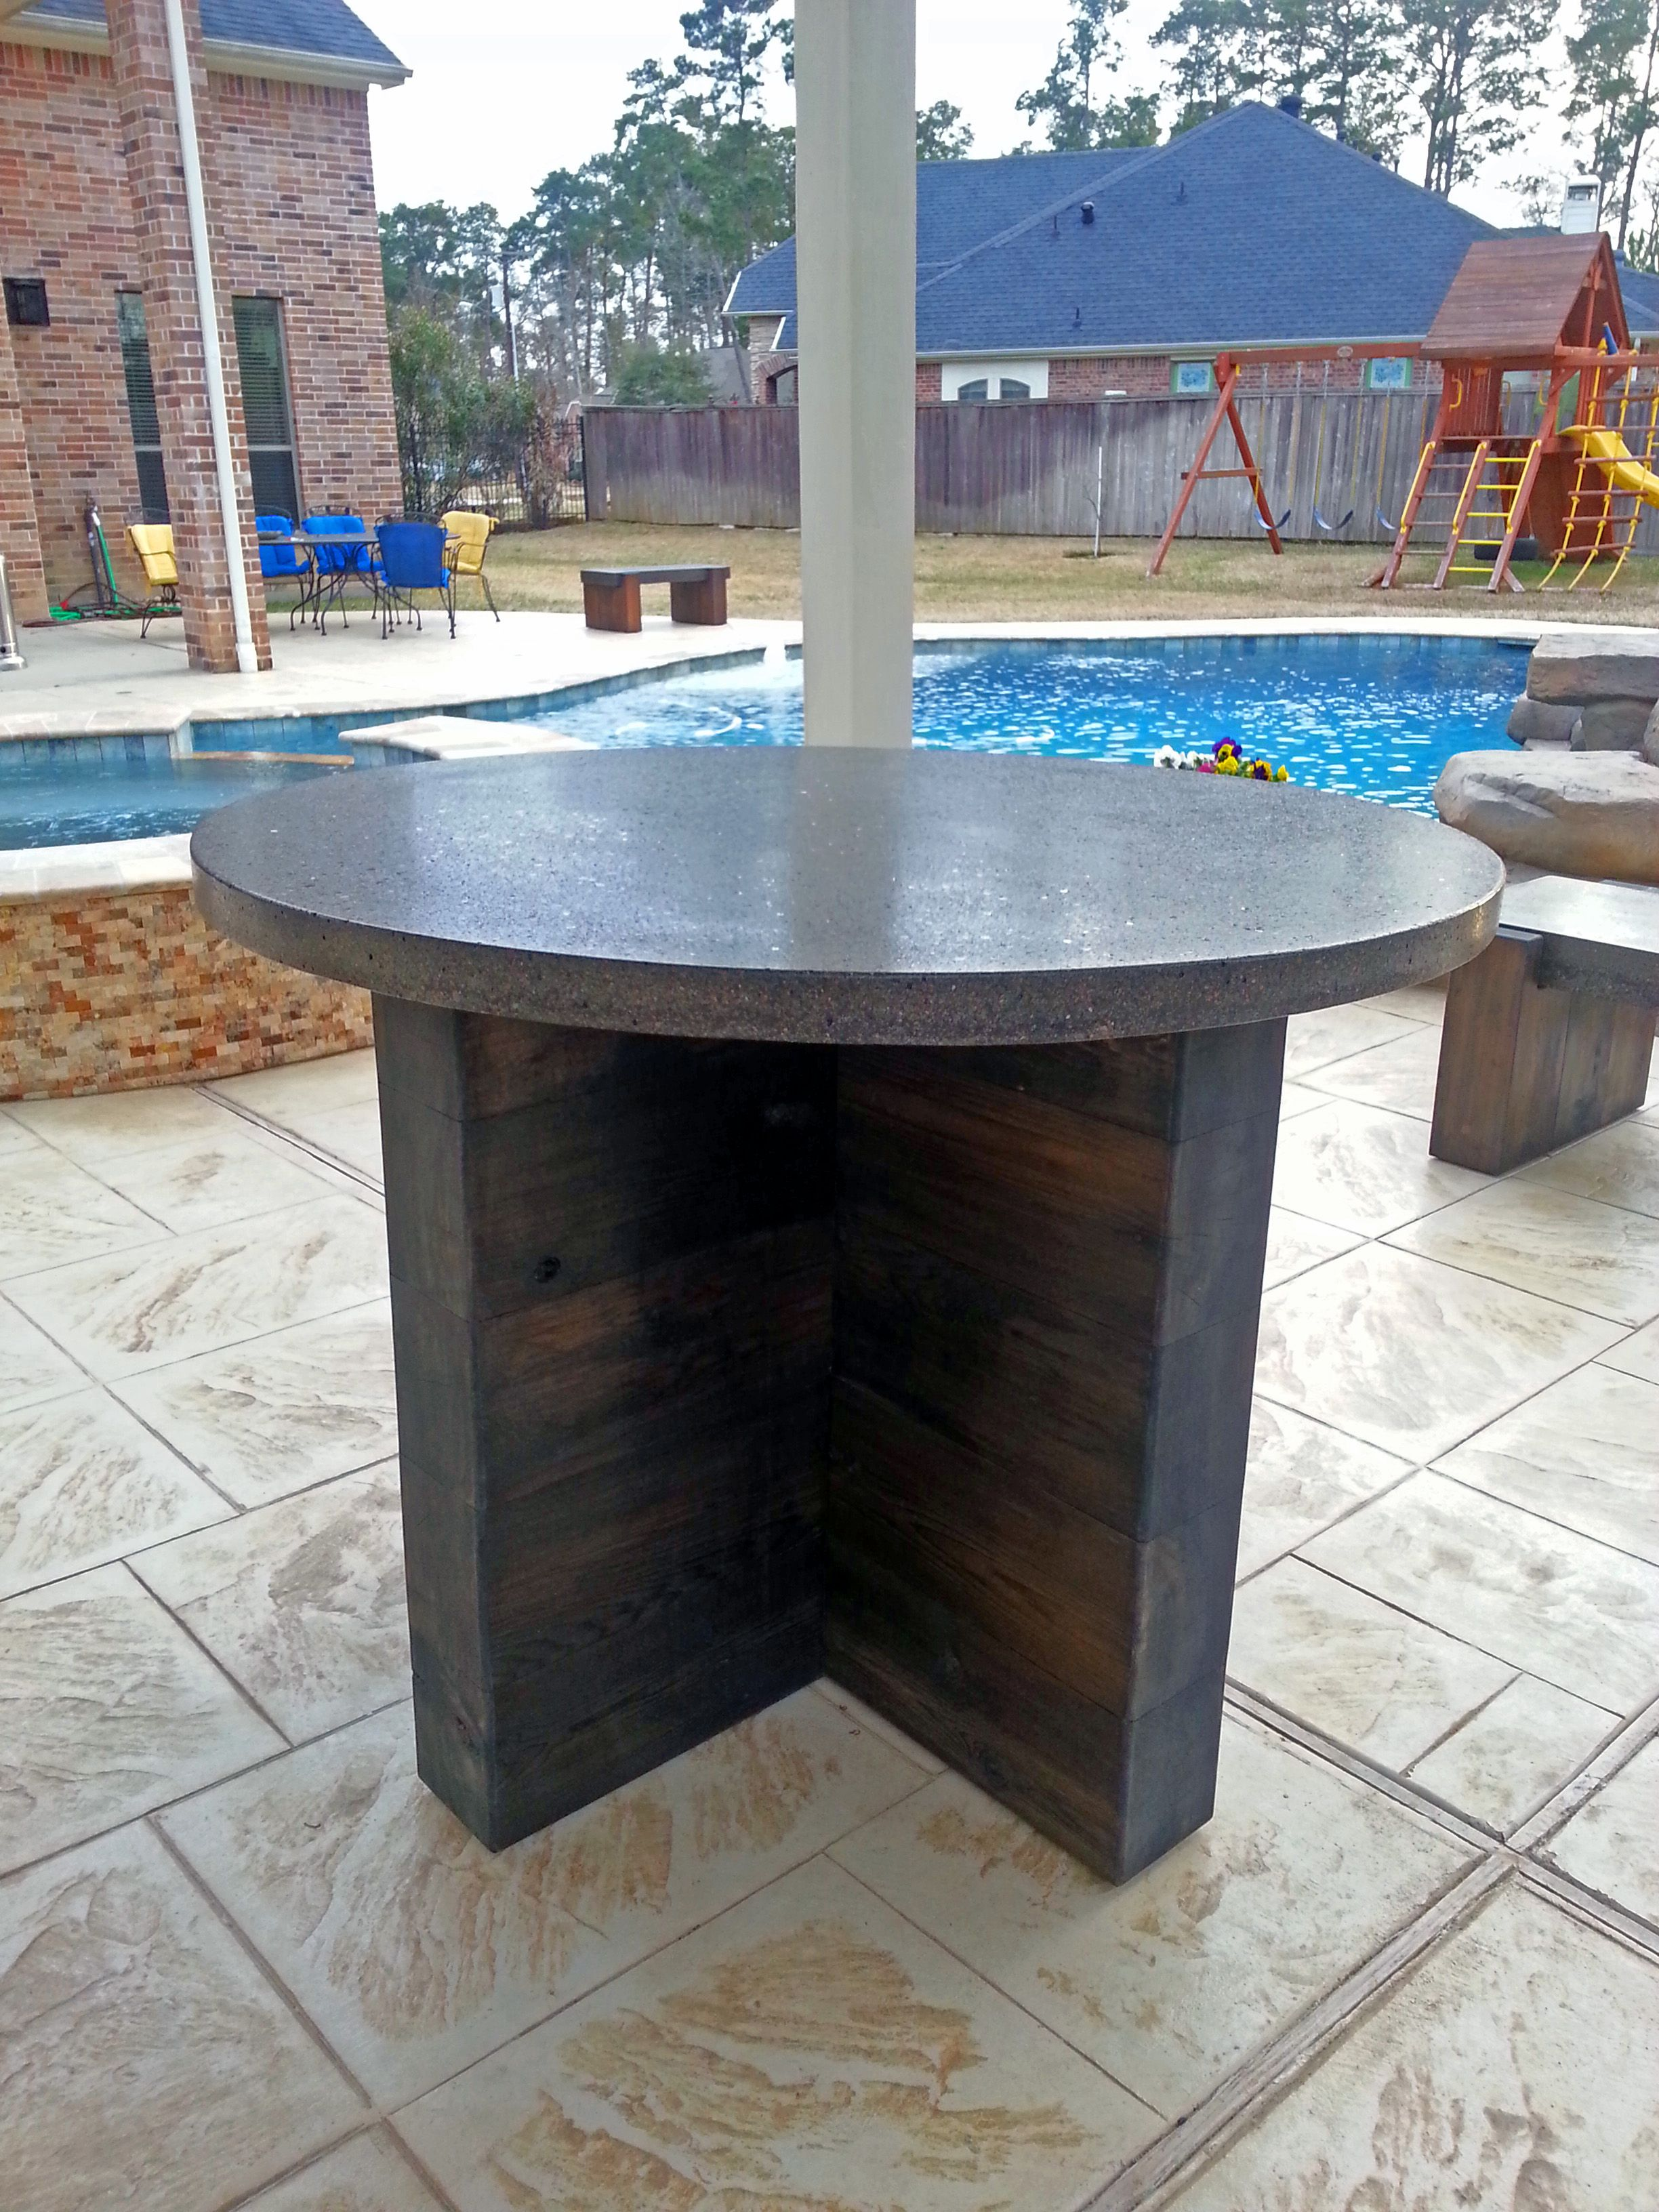 Pub height outdoor concrete table we designed for a client for their